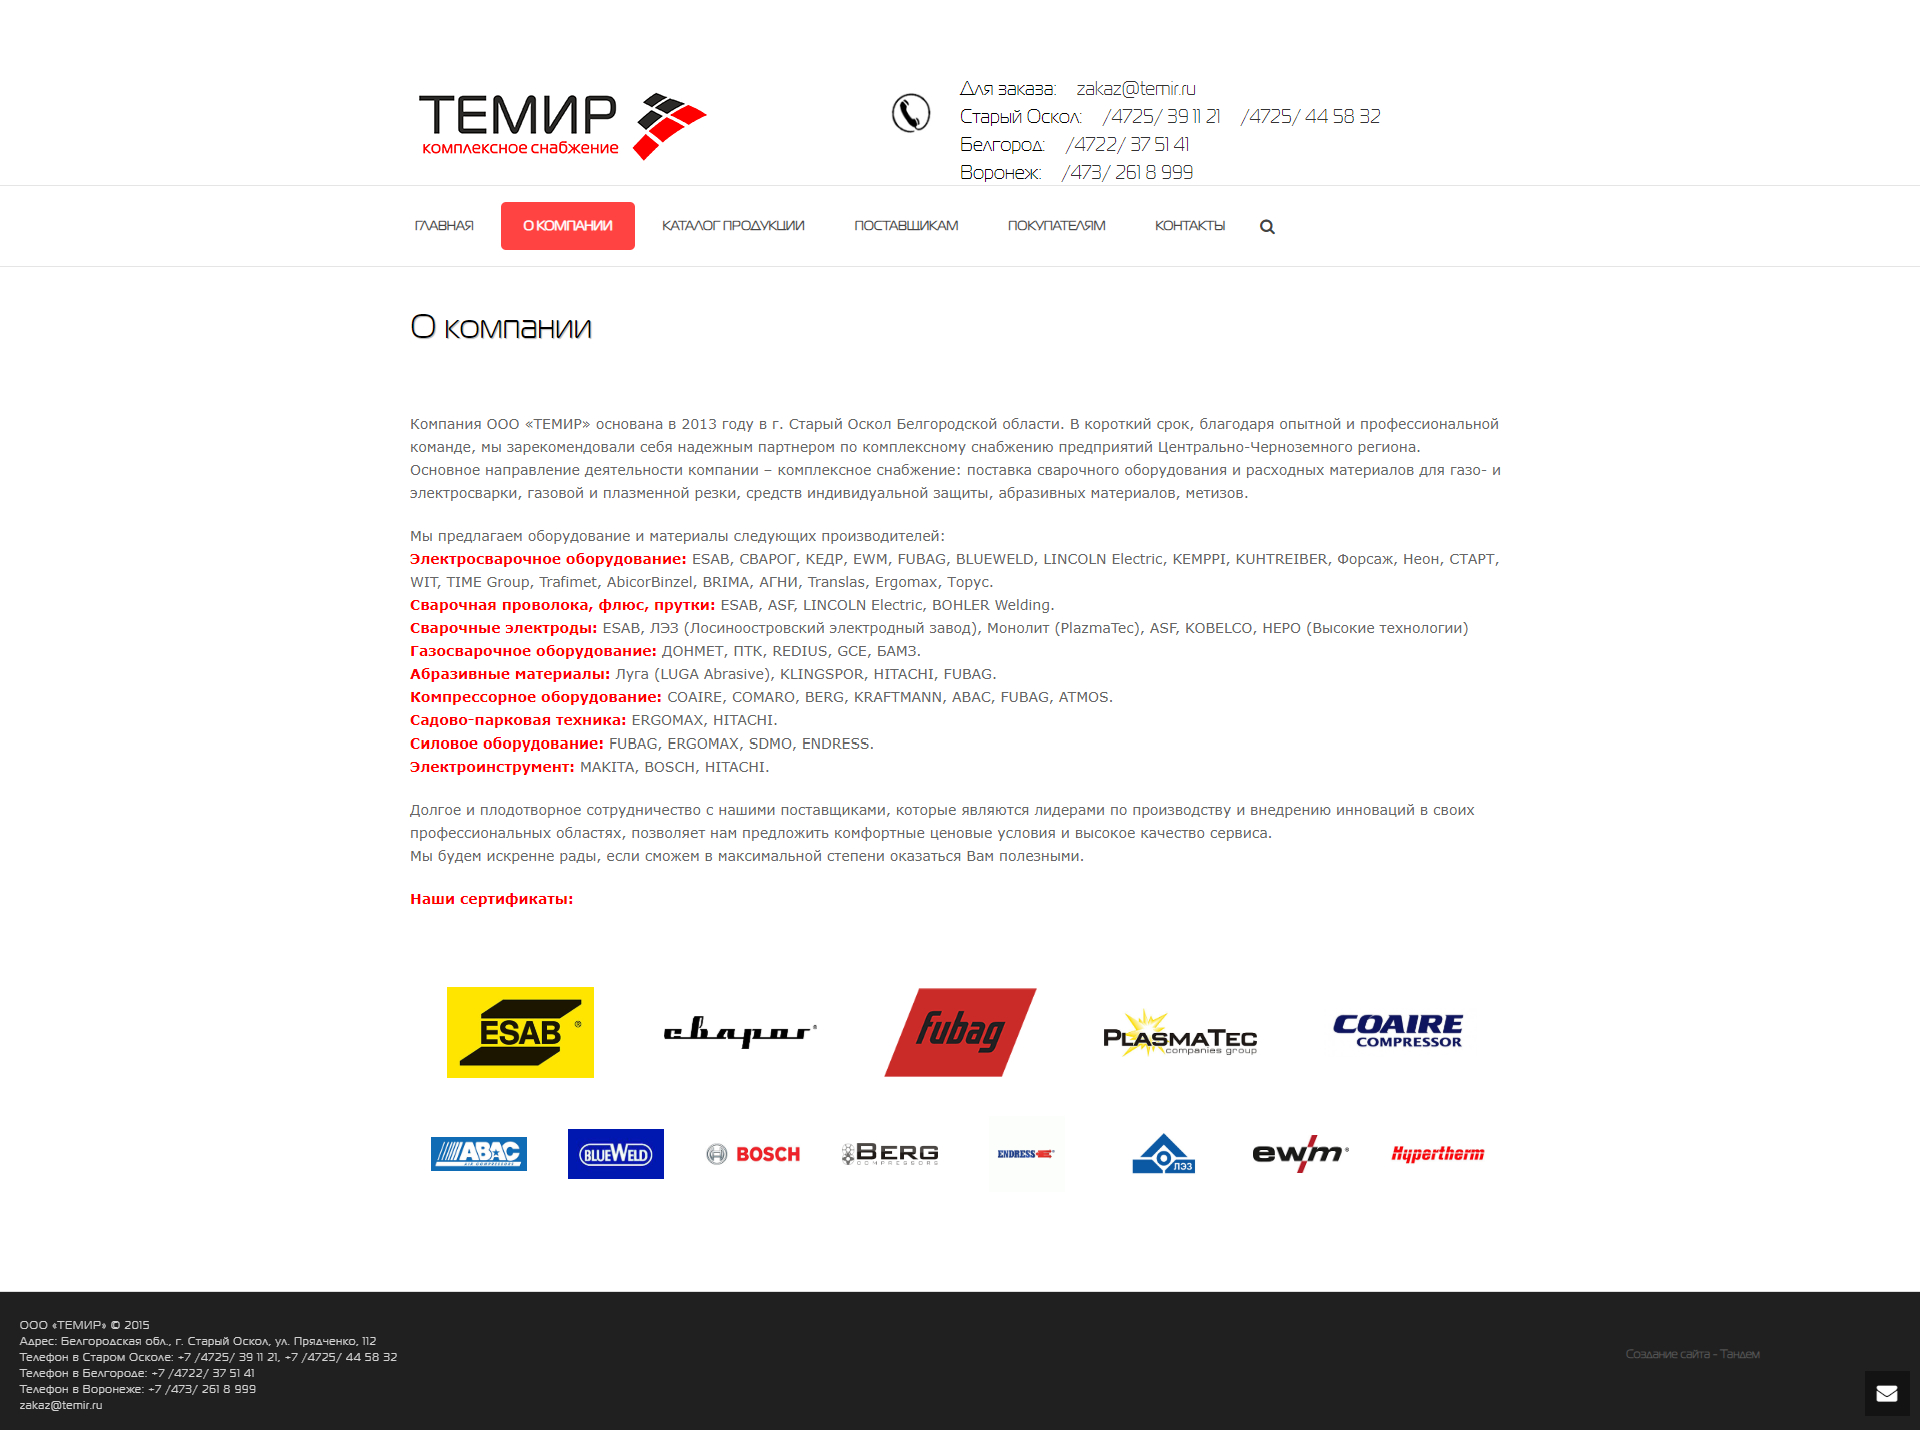 screencapture-web-archive-org-web-20170518150713-http-temir-ru-o-kompanii-2020-02-03-19_15_20